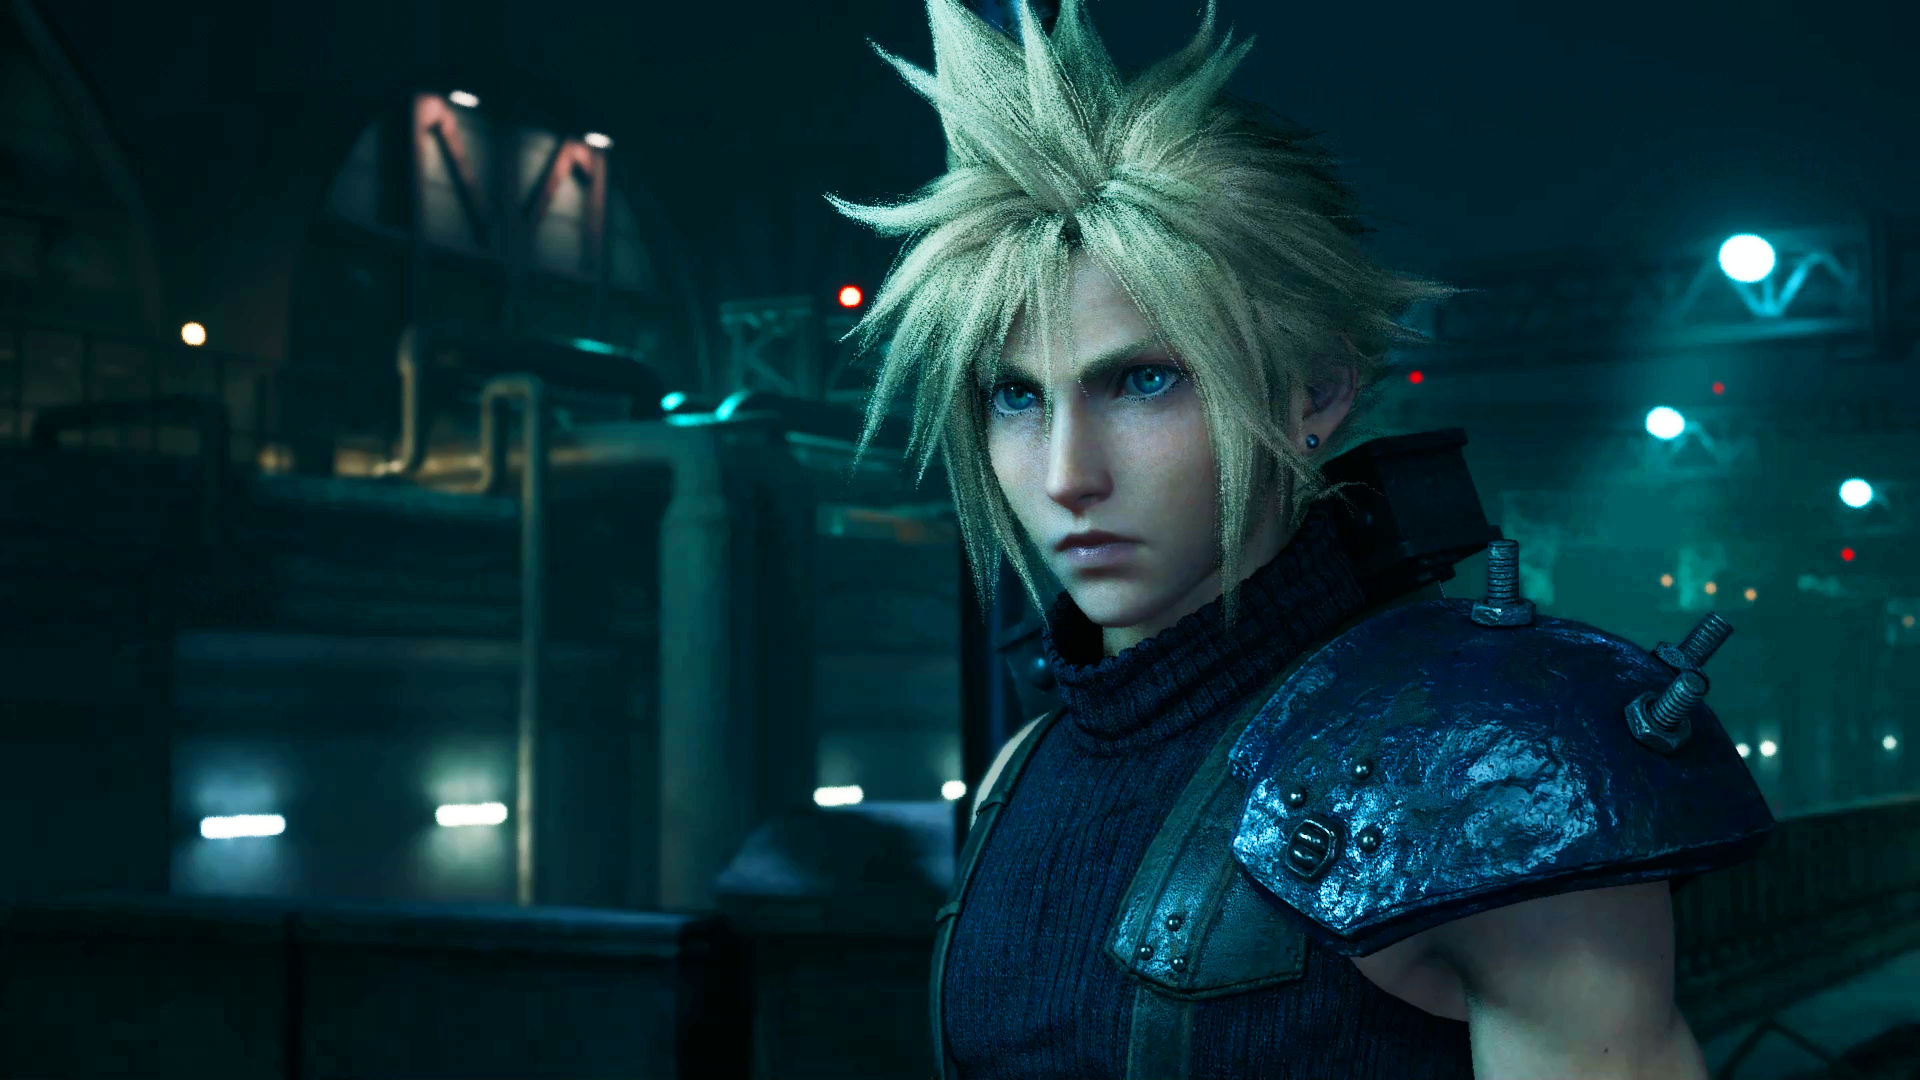 Video: Final Fantasy 7 Remake is utterly spectacular